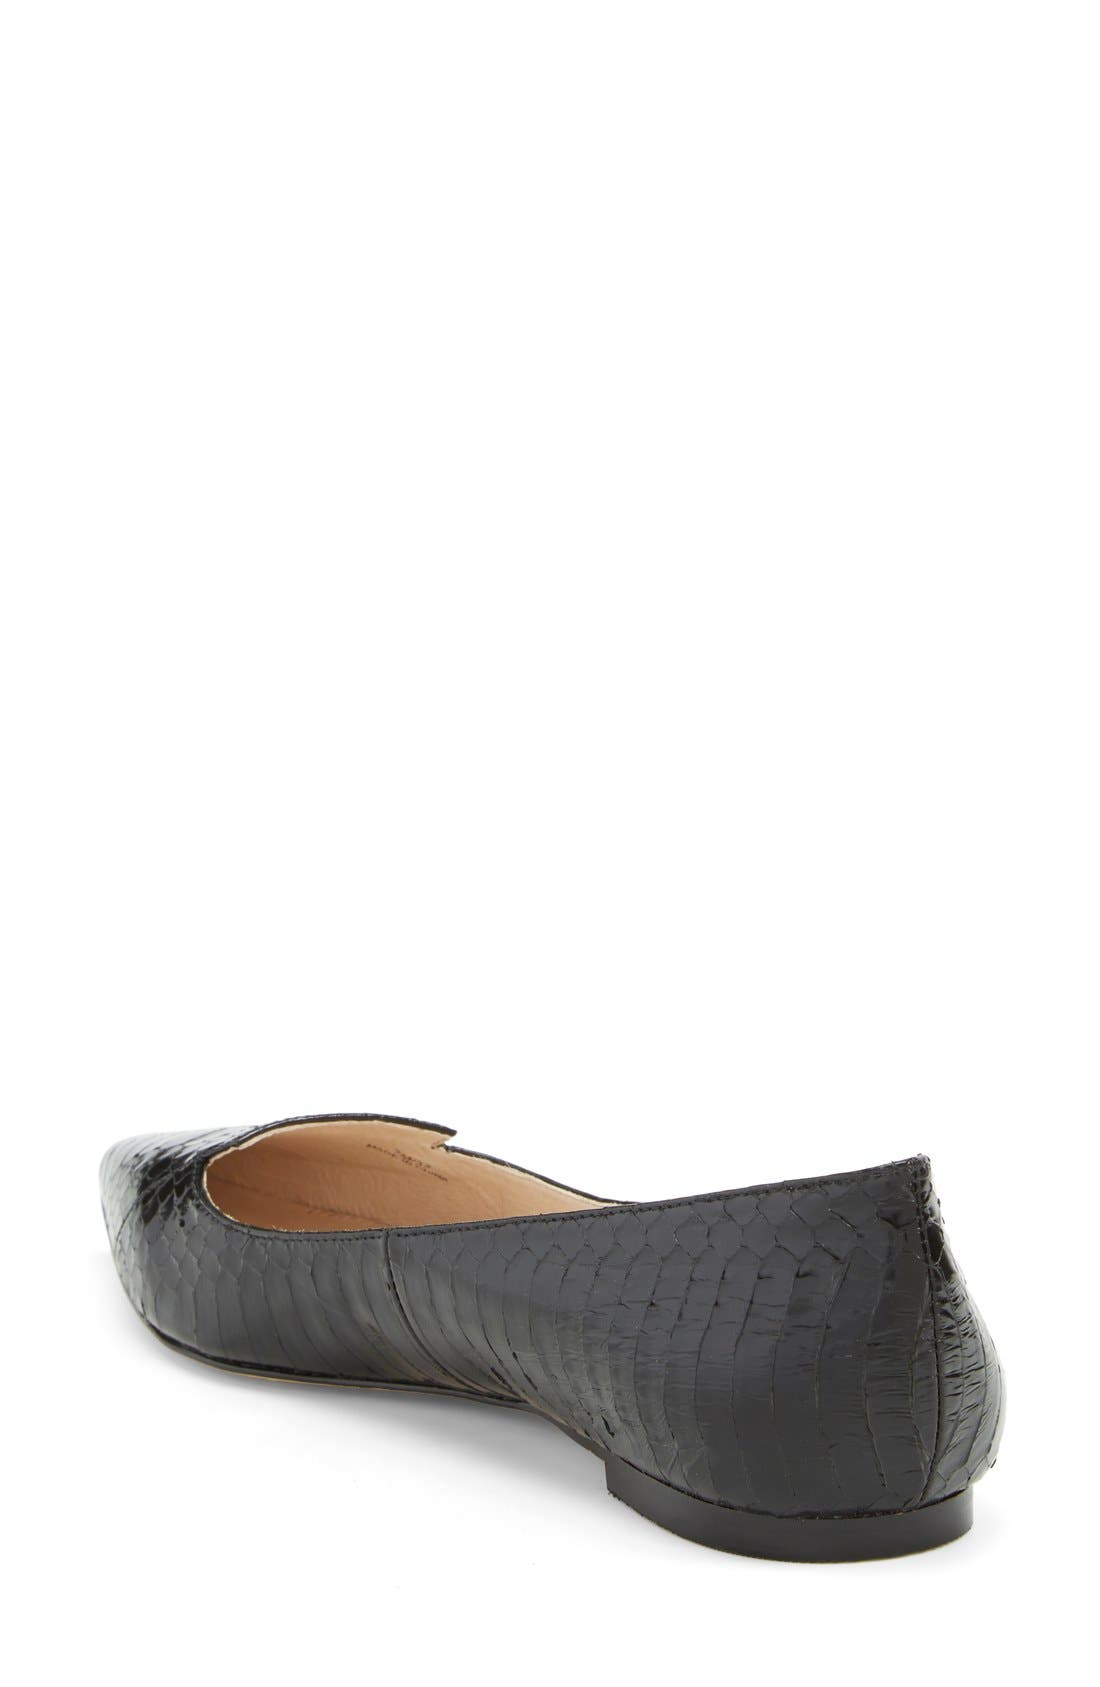 Alternate Image 2  - Vince Camuto 'Empa' Pointy Toe Loafer Flat (Women) (Nordstrom Exclusive)